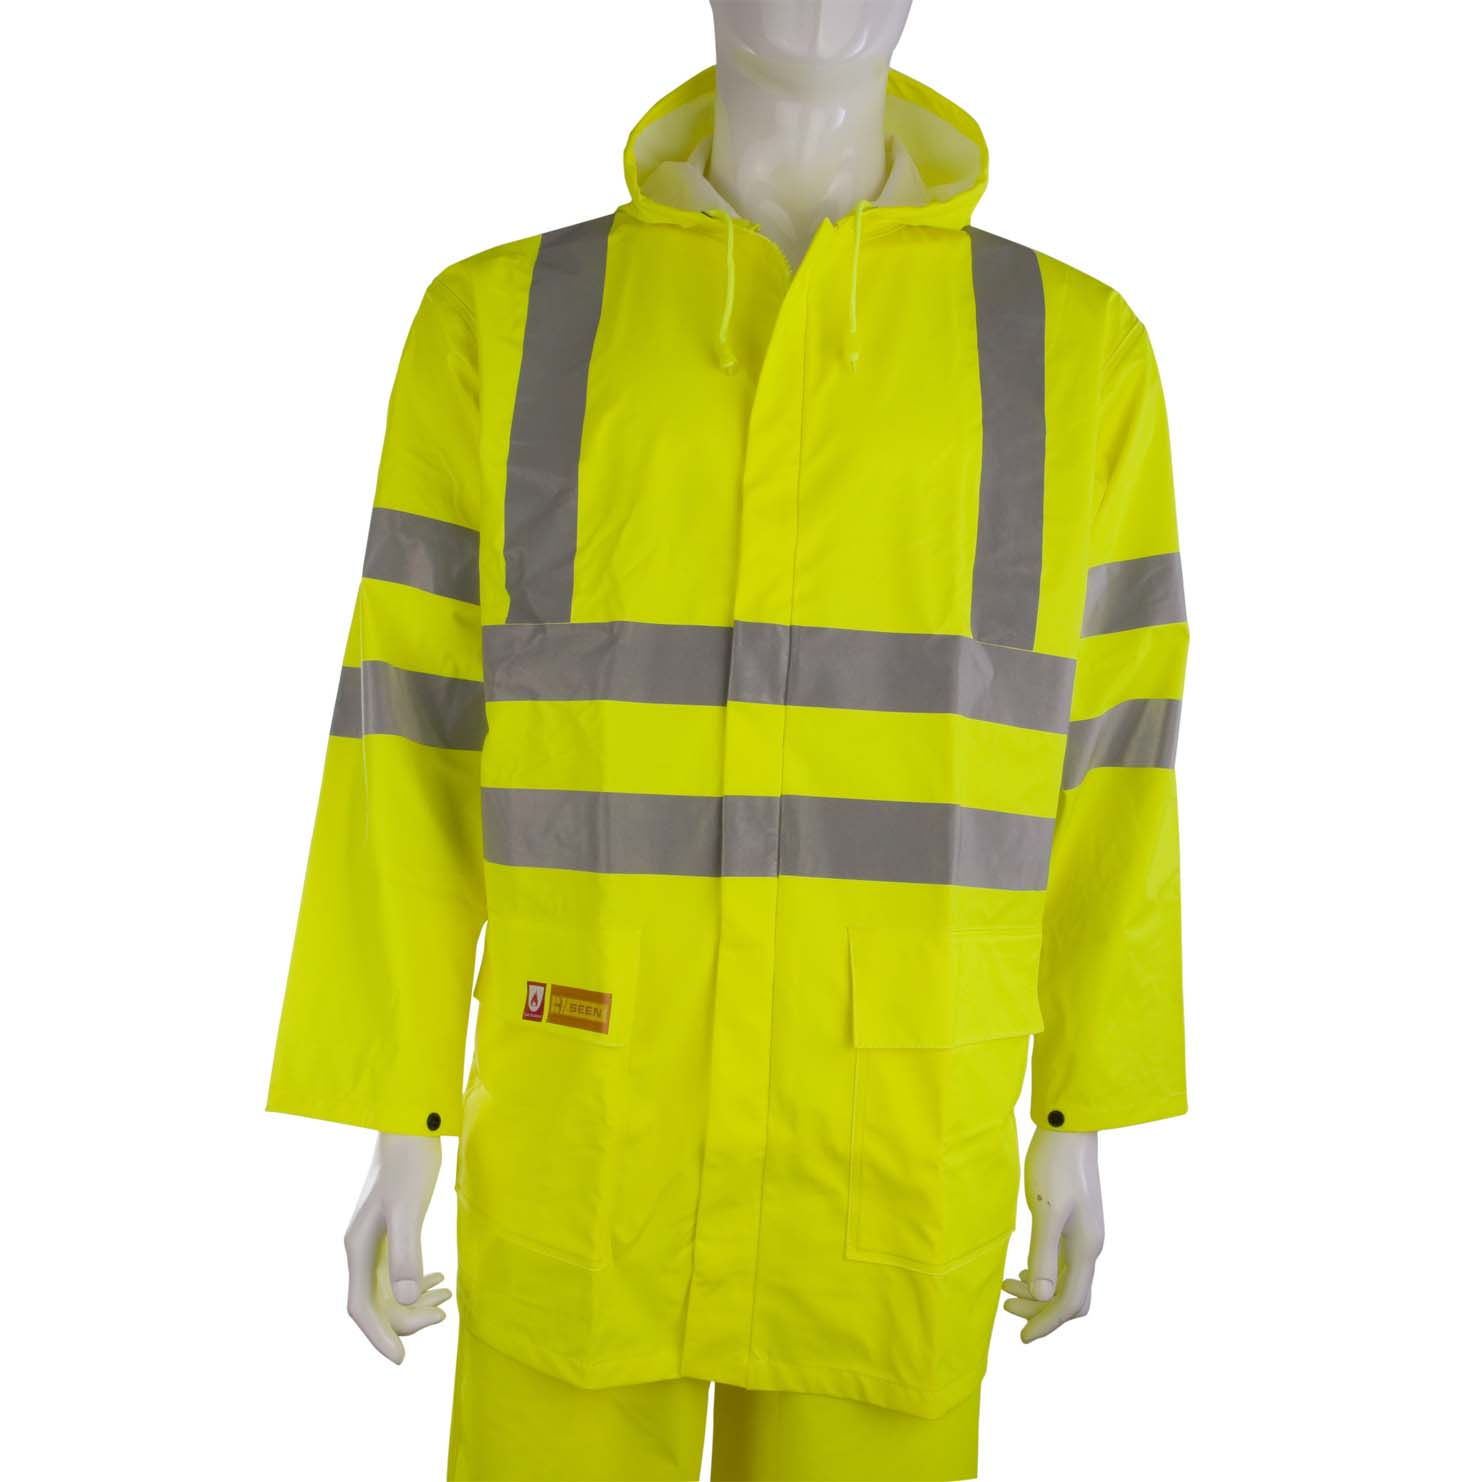 B-Seen Fire Retardant Jacket Anti-static 2XL Sat Yellow Ref CFRLR55SYXXL *Up to 3 Day Leadtime*